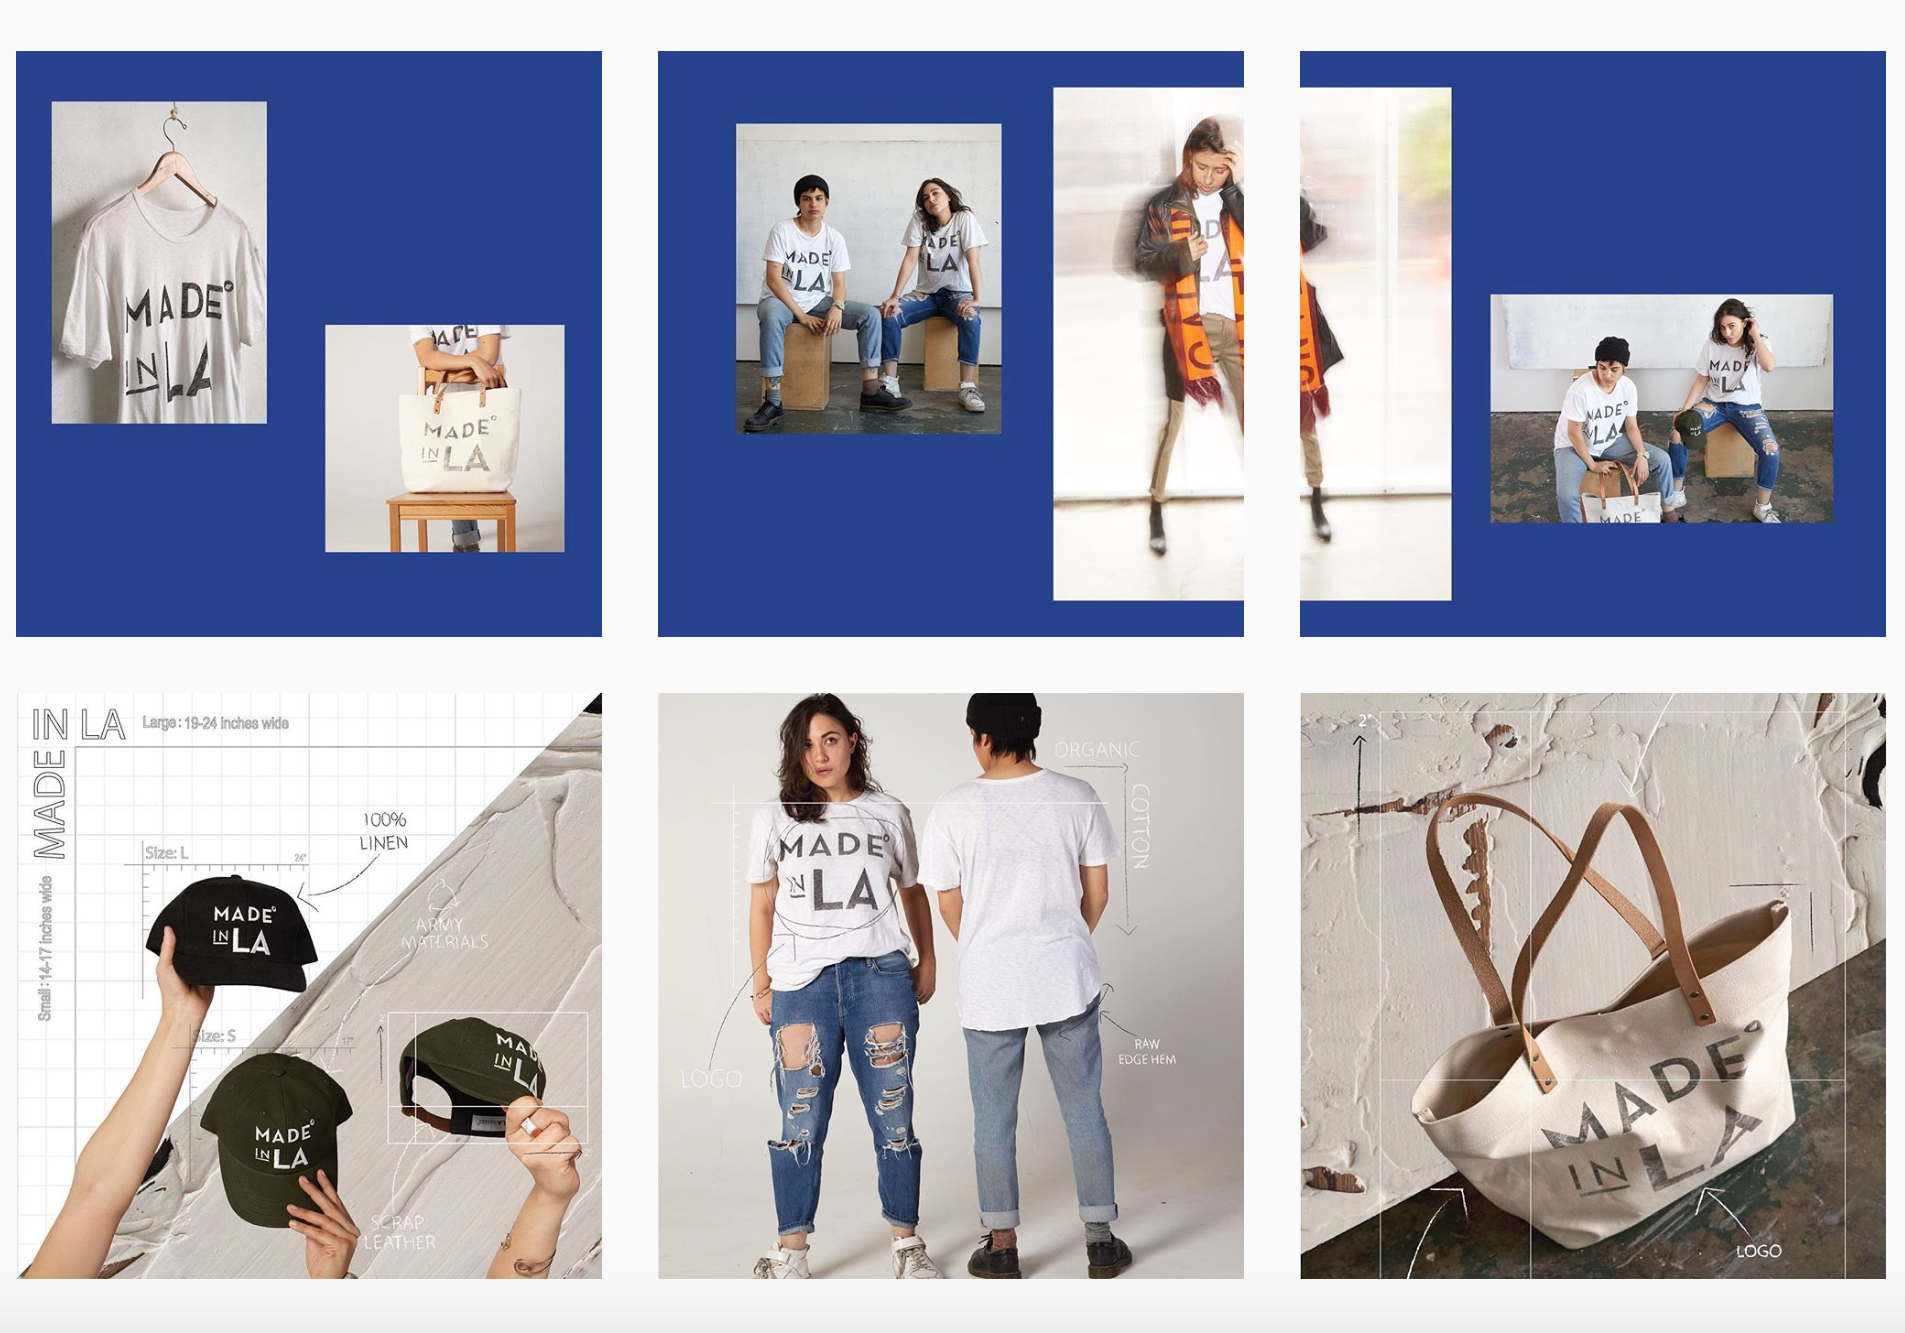 Made in LA - Scheduling posts, following product and promoting new merchandise, all made locally in Los Angeles.